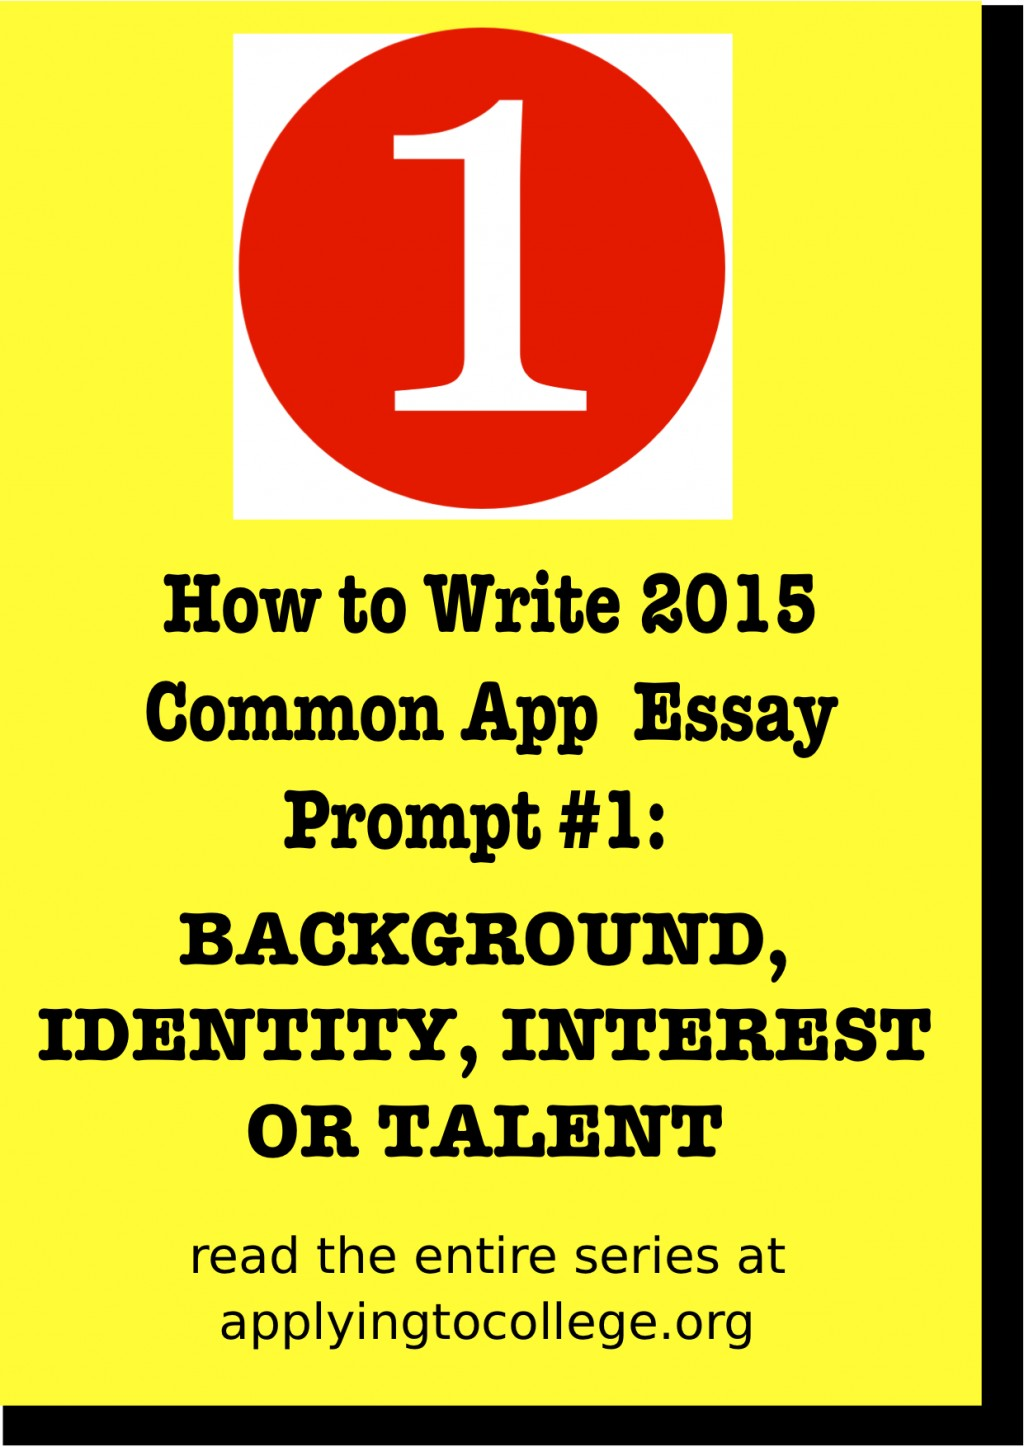 002 Essay Example Common Application Prompts How To Write App Surprising 2015 Large